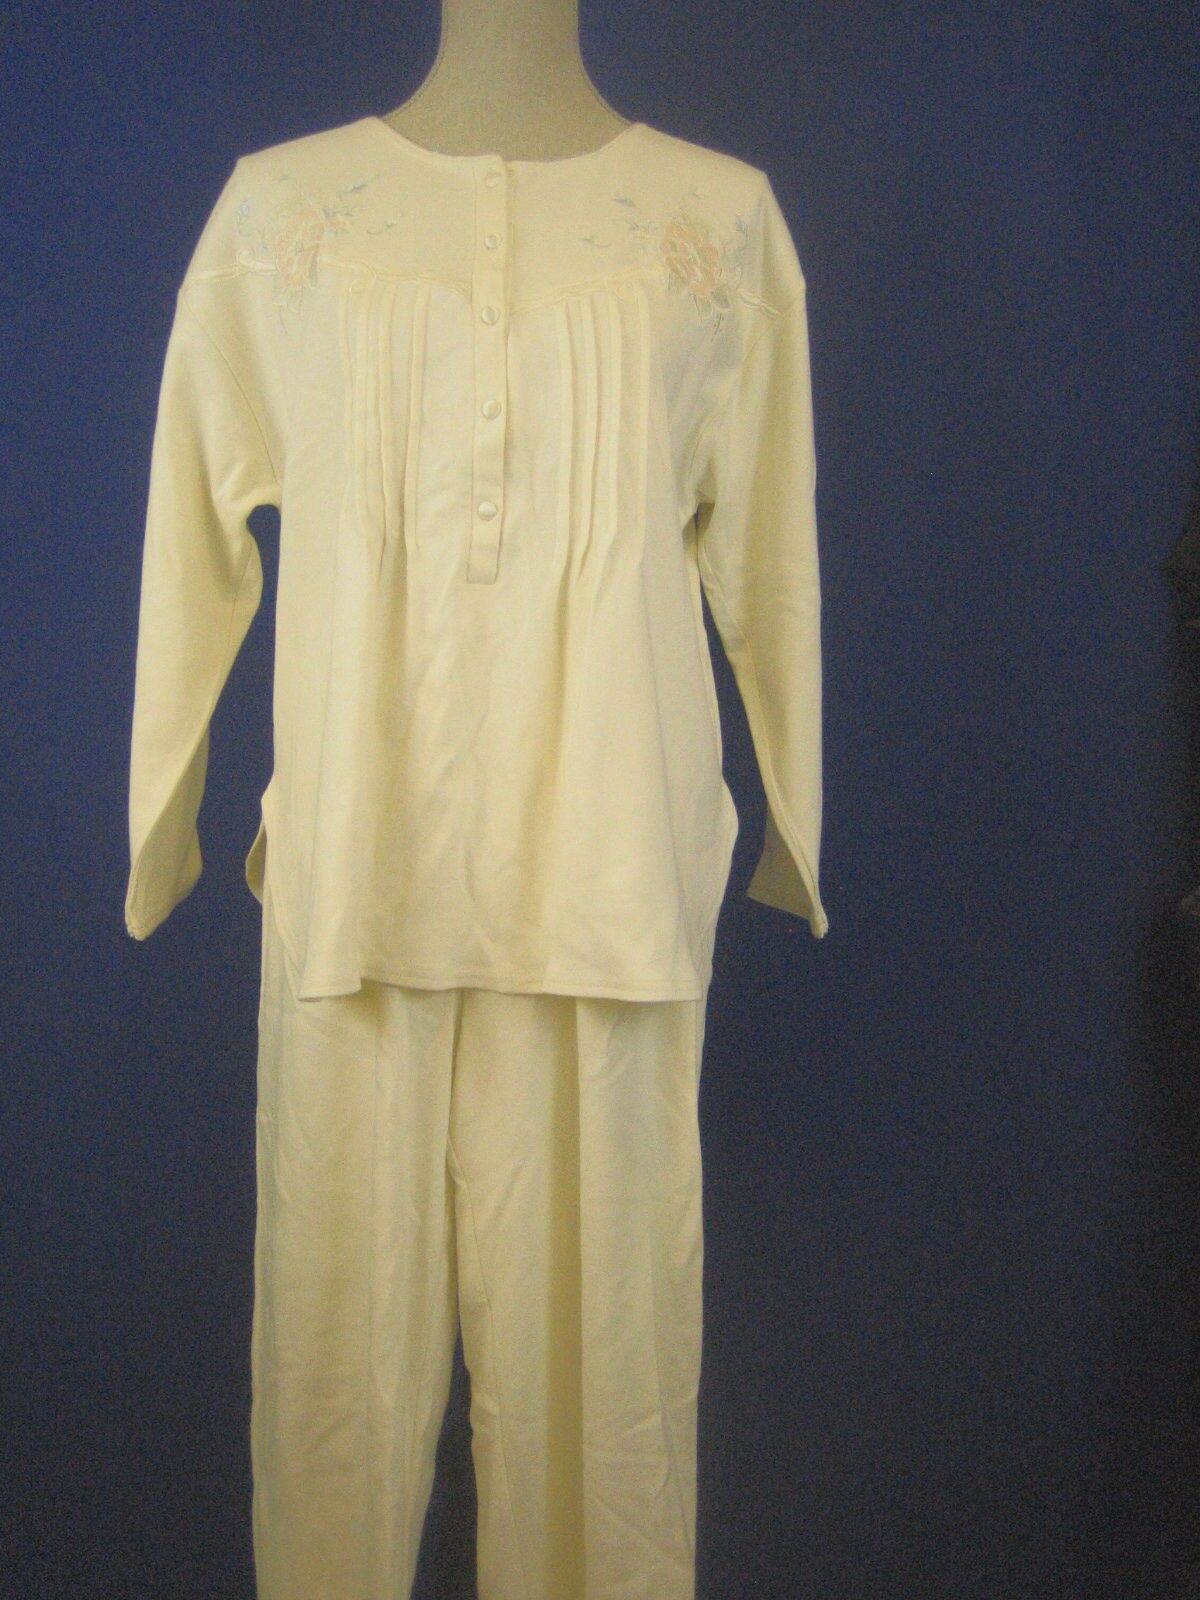 Sarah Spencer NEW Ivory Cotton Pajama Set S